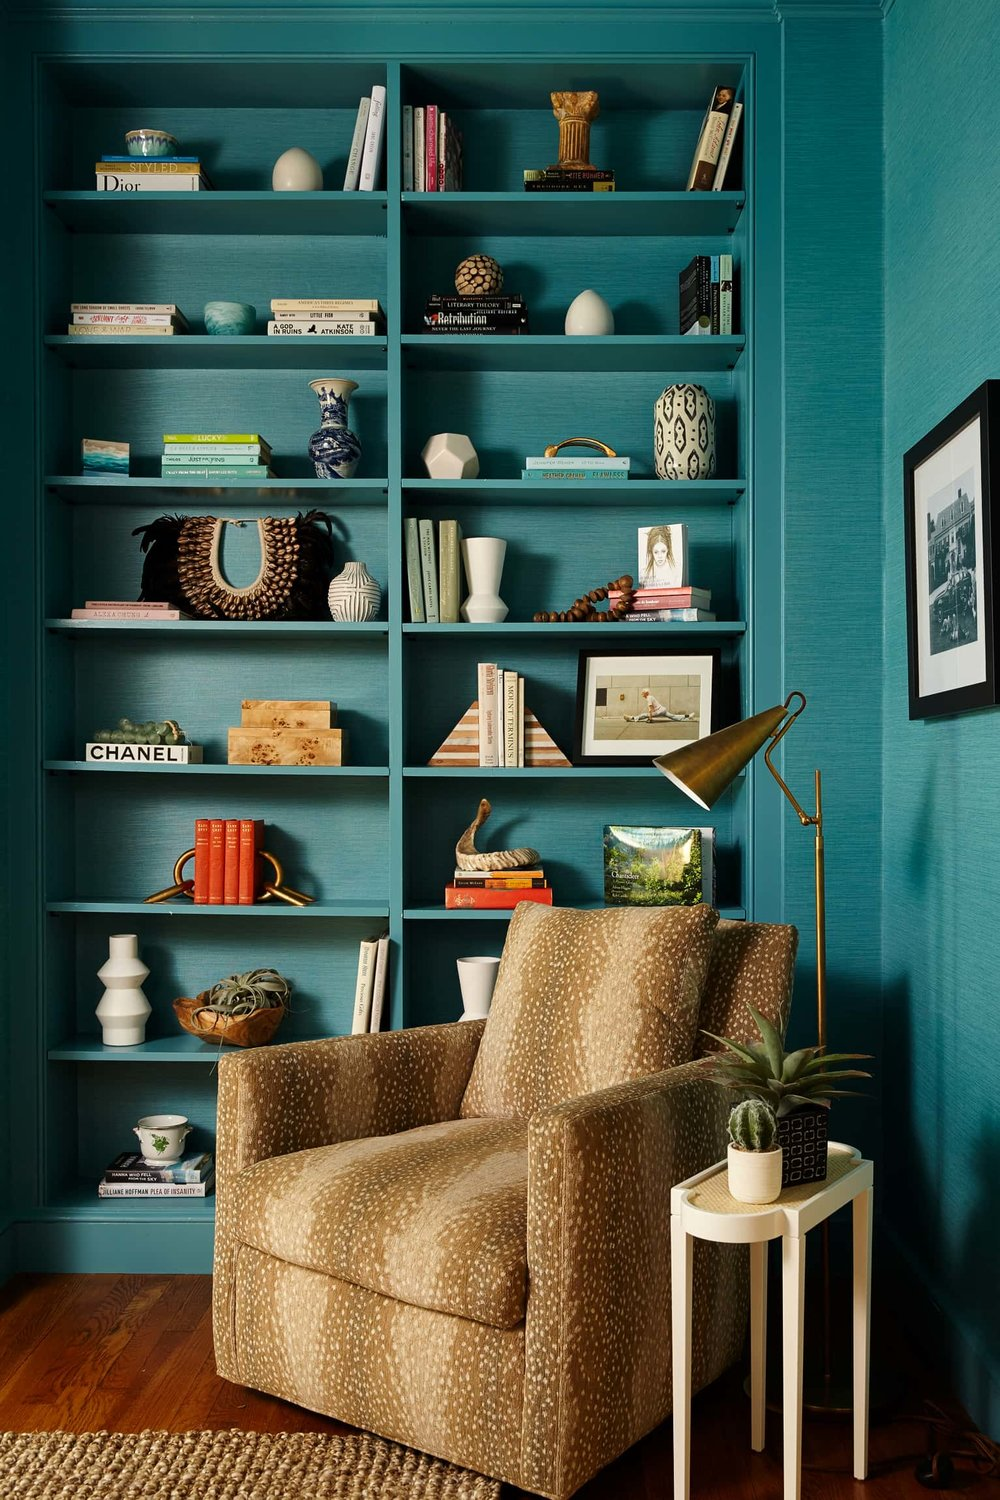 Living room with shelves and a chair